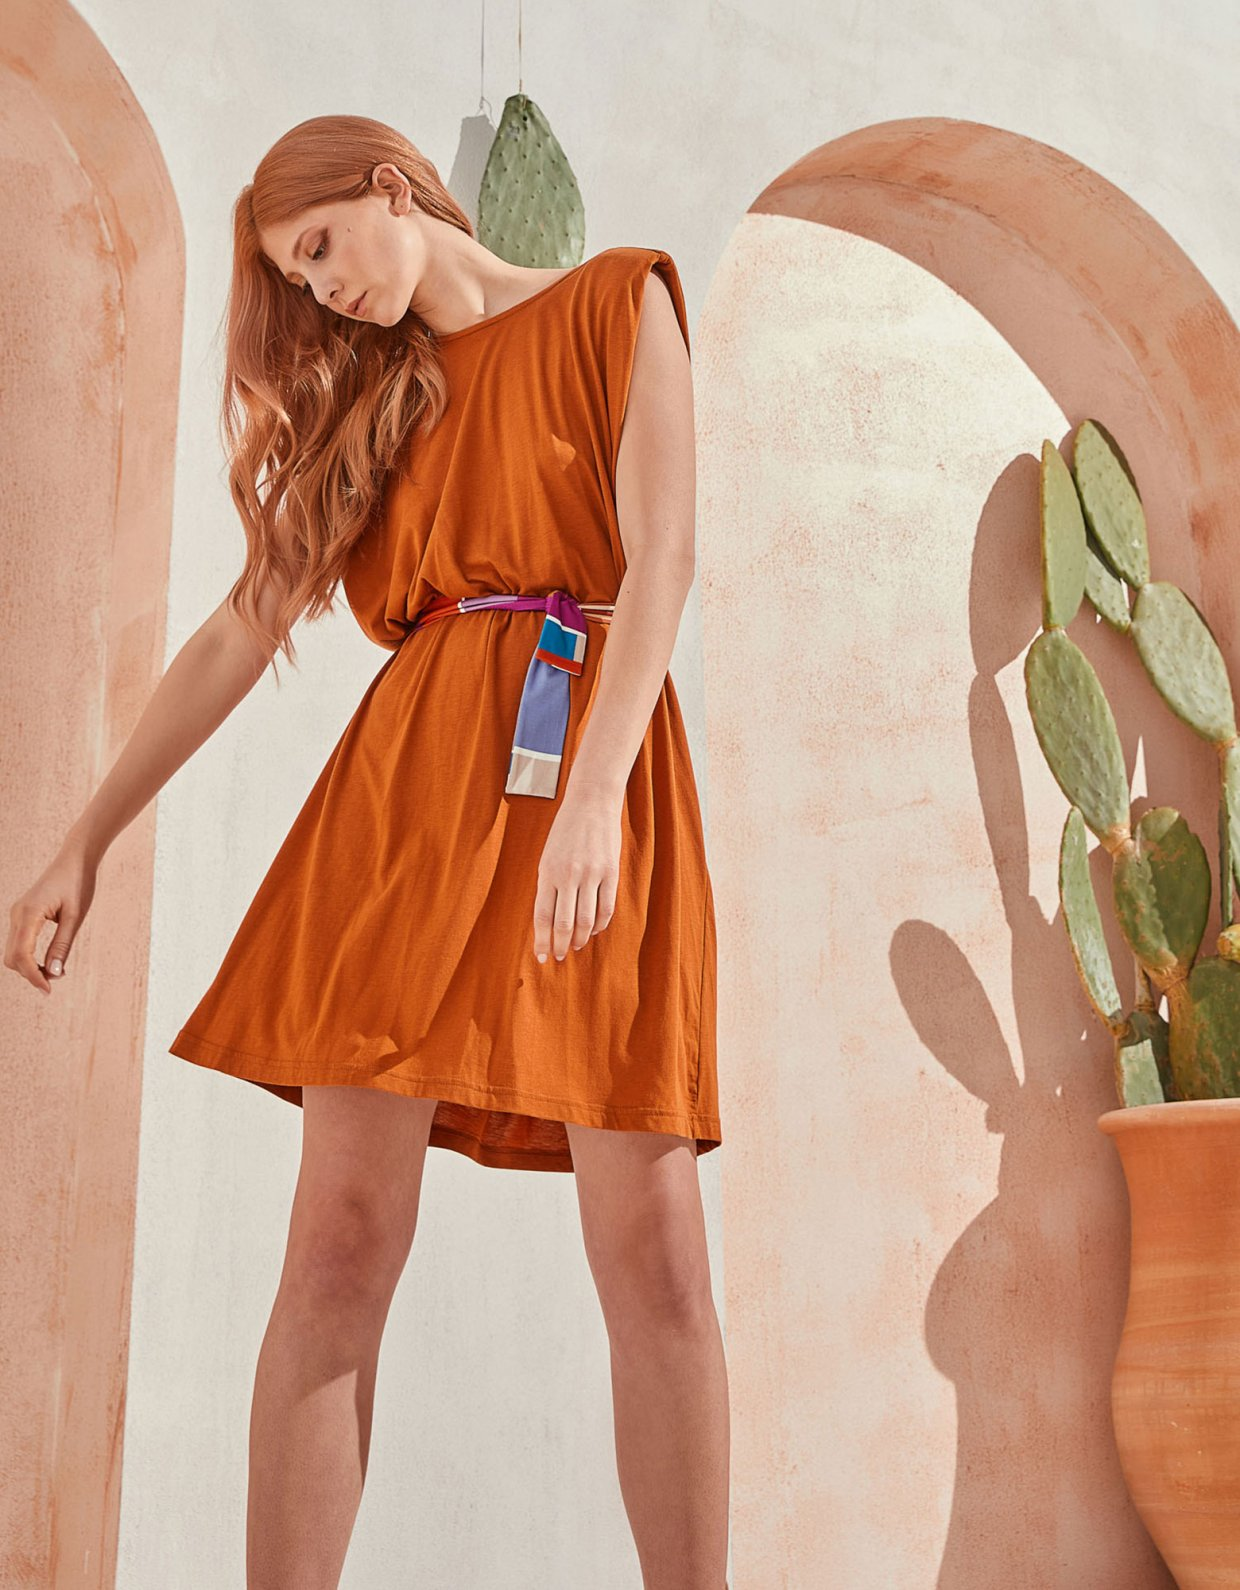 The Knl's Jaunt dress toffee